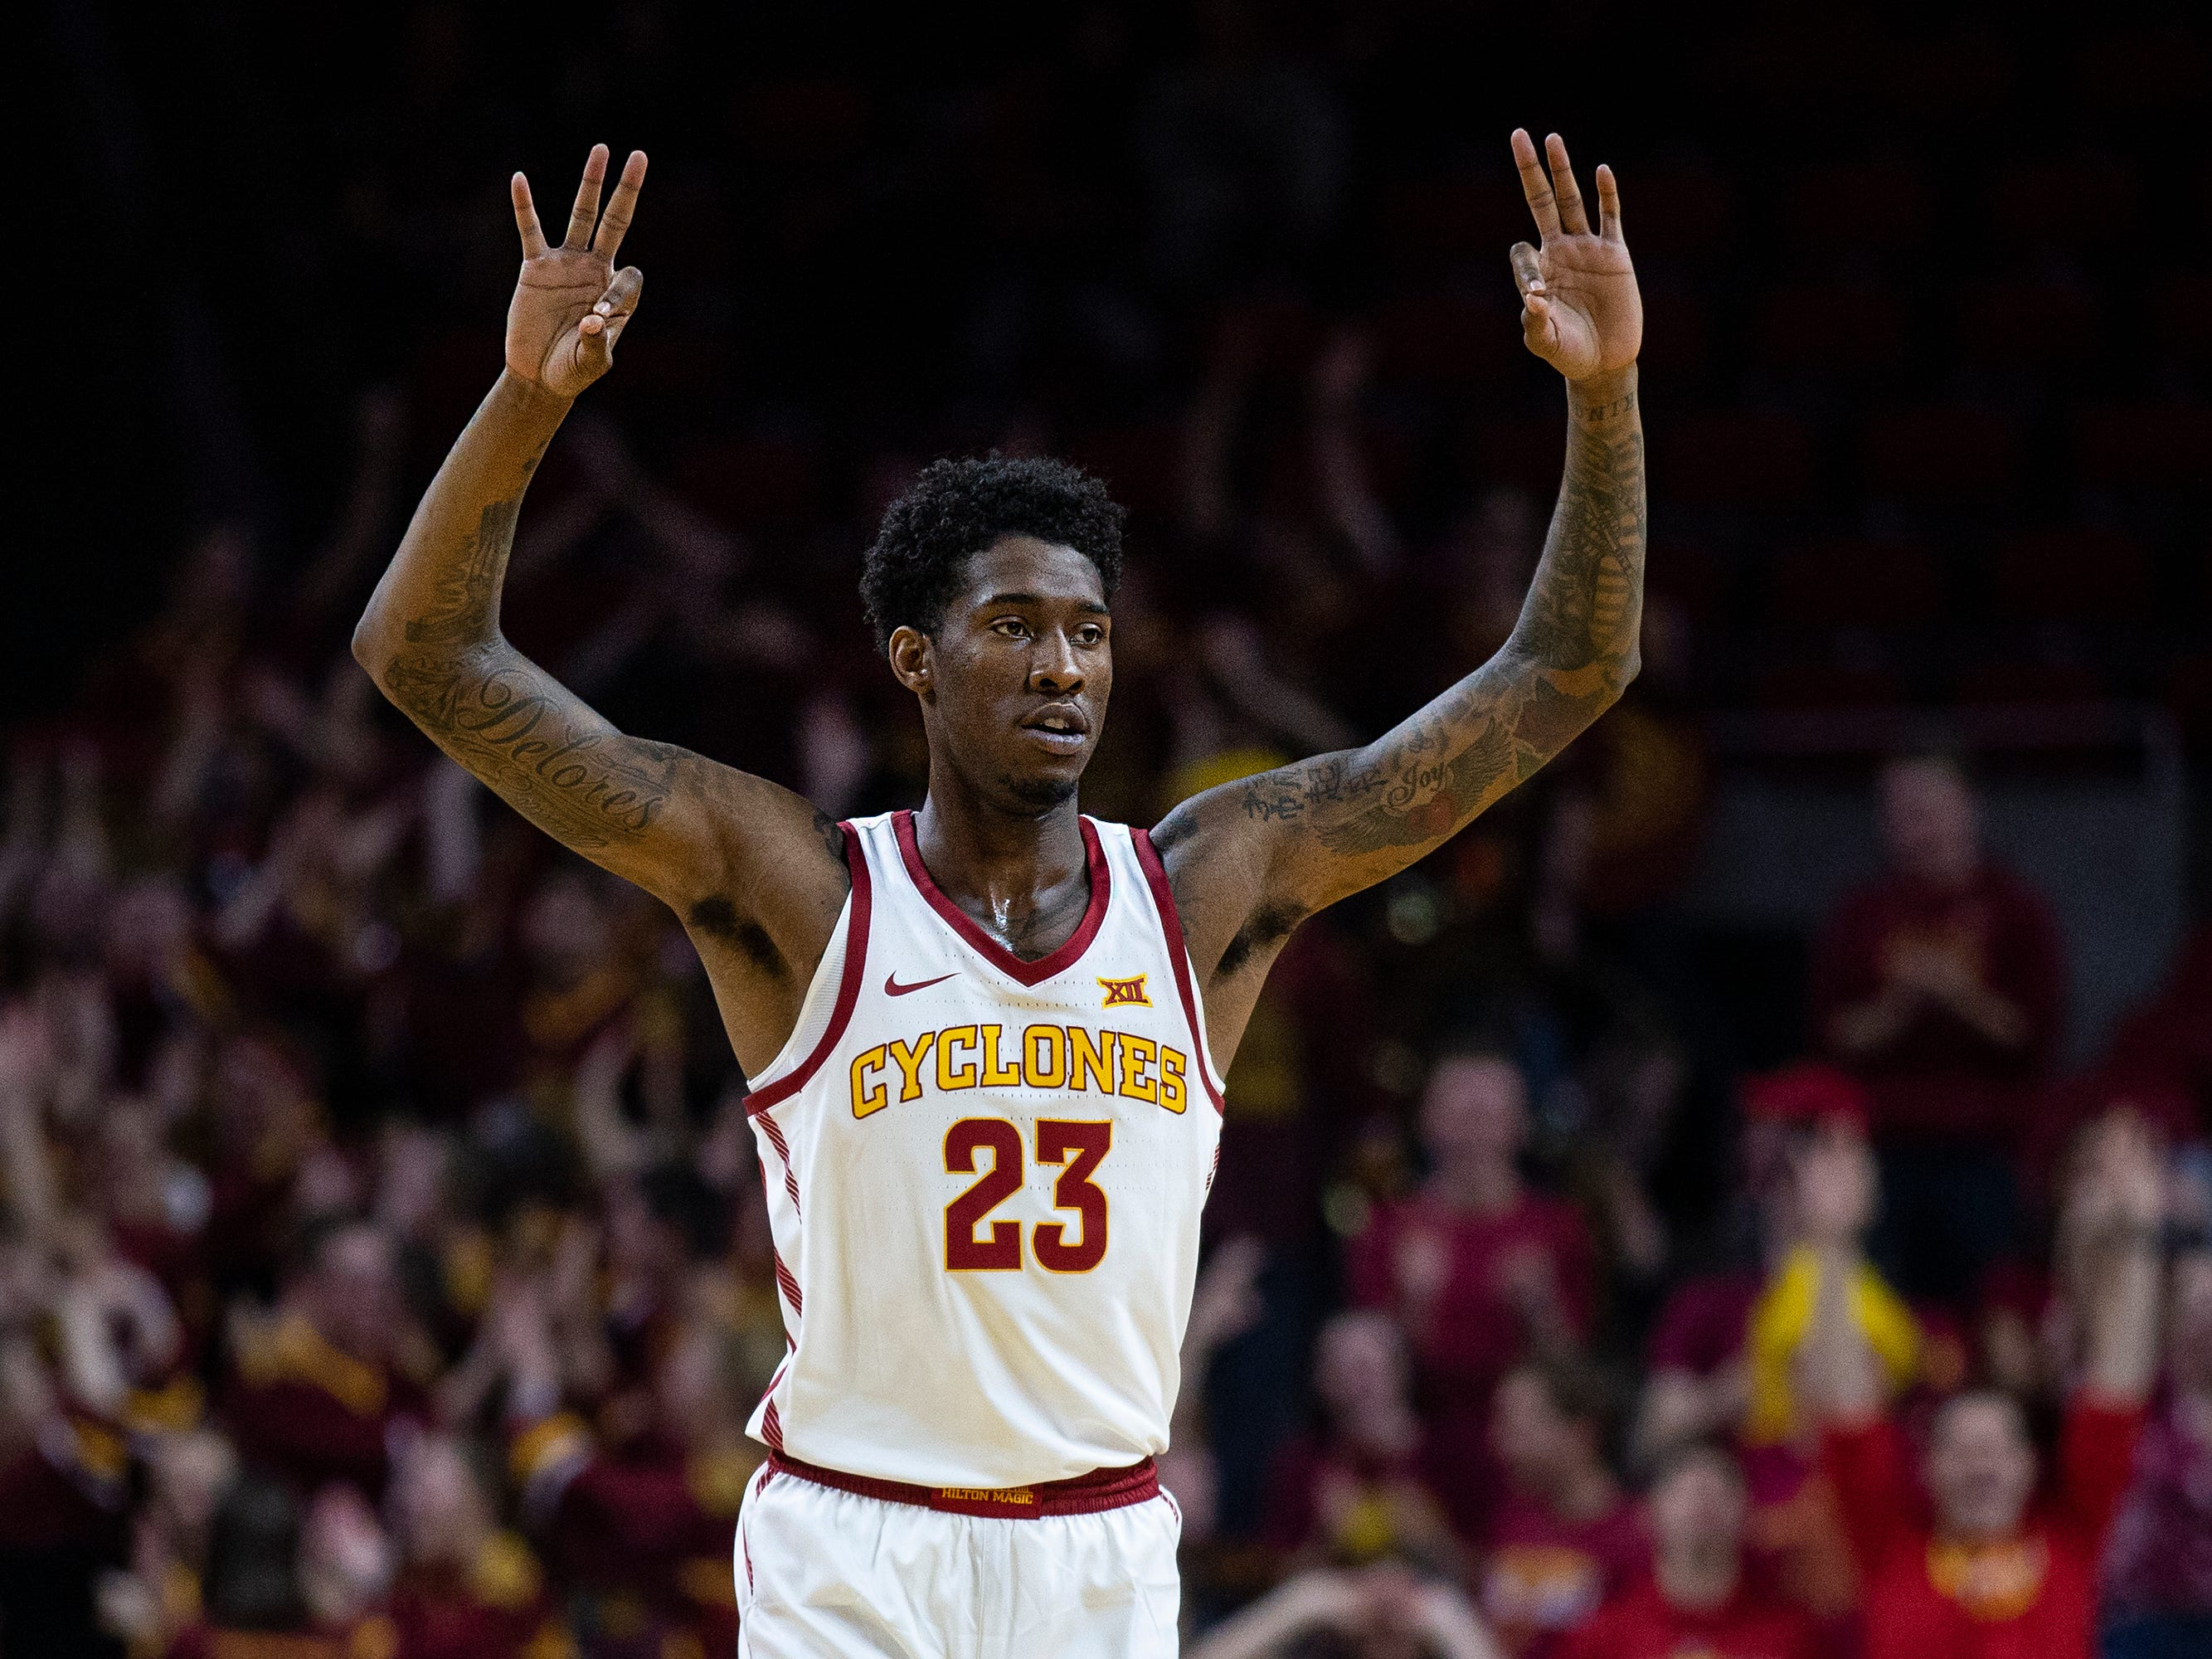 Iowa State's Zoran Talley Jr. celebrates scoring during the Iowa State men's basketball game against Southern on Sunday, Dec. 9, 2018, in Hilton Coliseum.